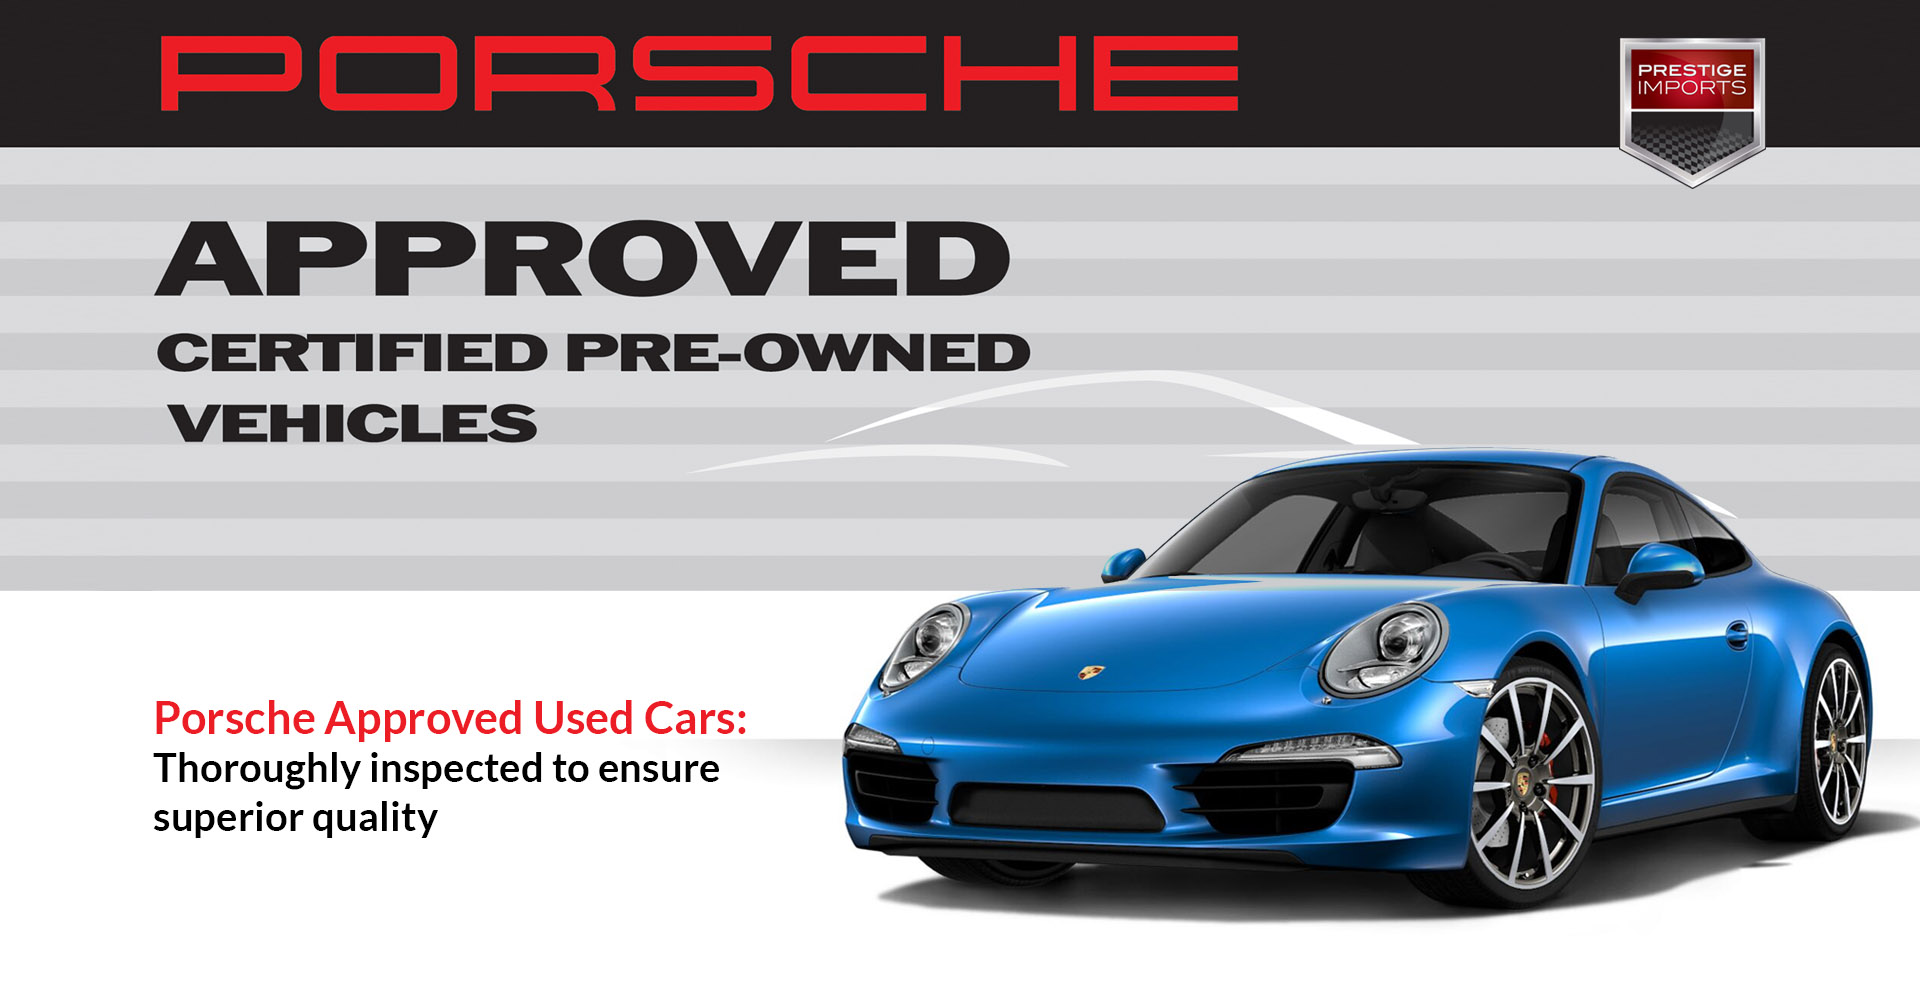 Porsche Approved Used Cars Superior Quality Assured